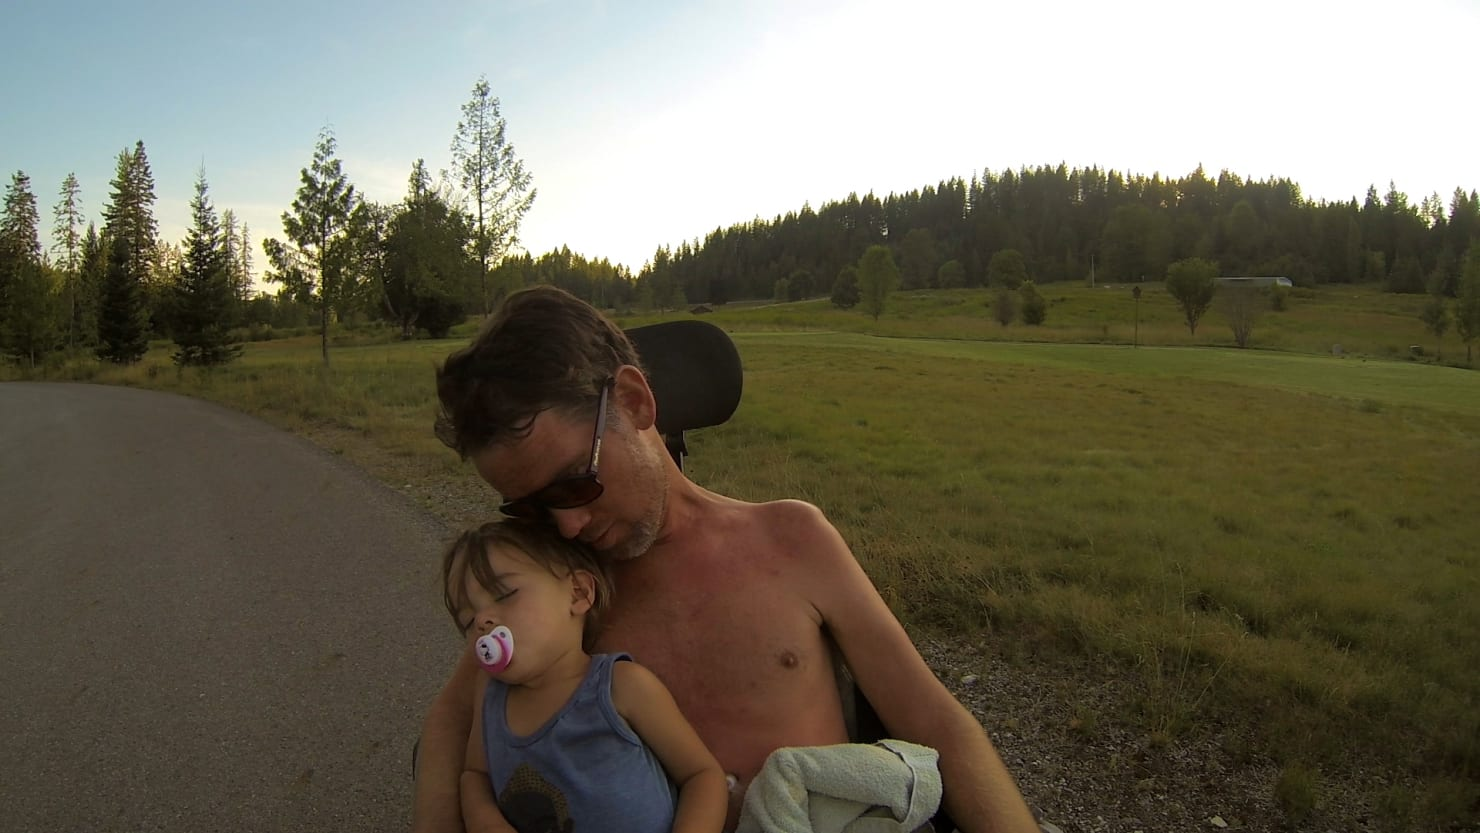 'Gleason': Inside the Most Powerful, Poignant Documentary of the Year